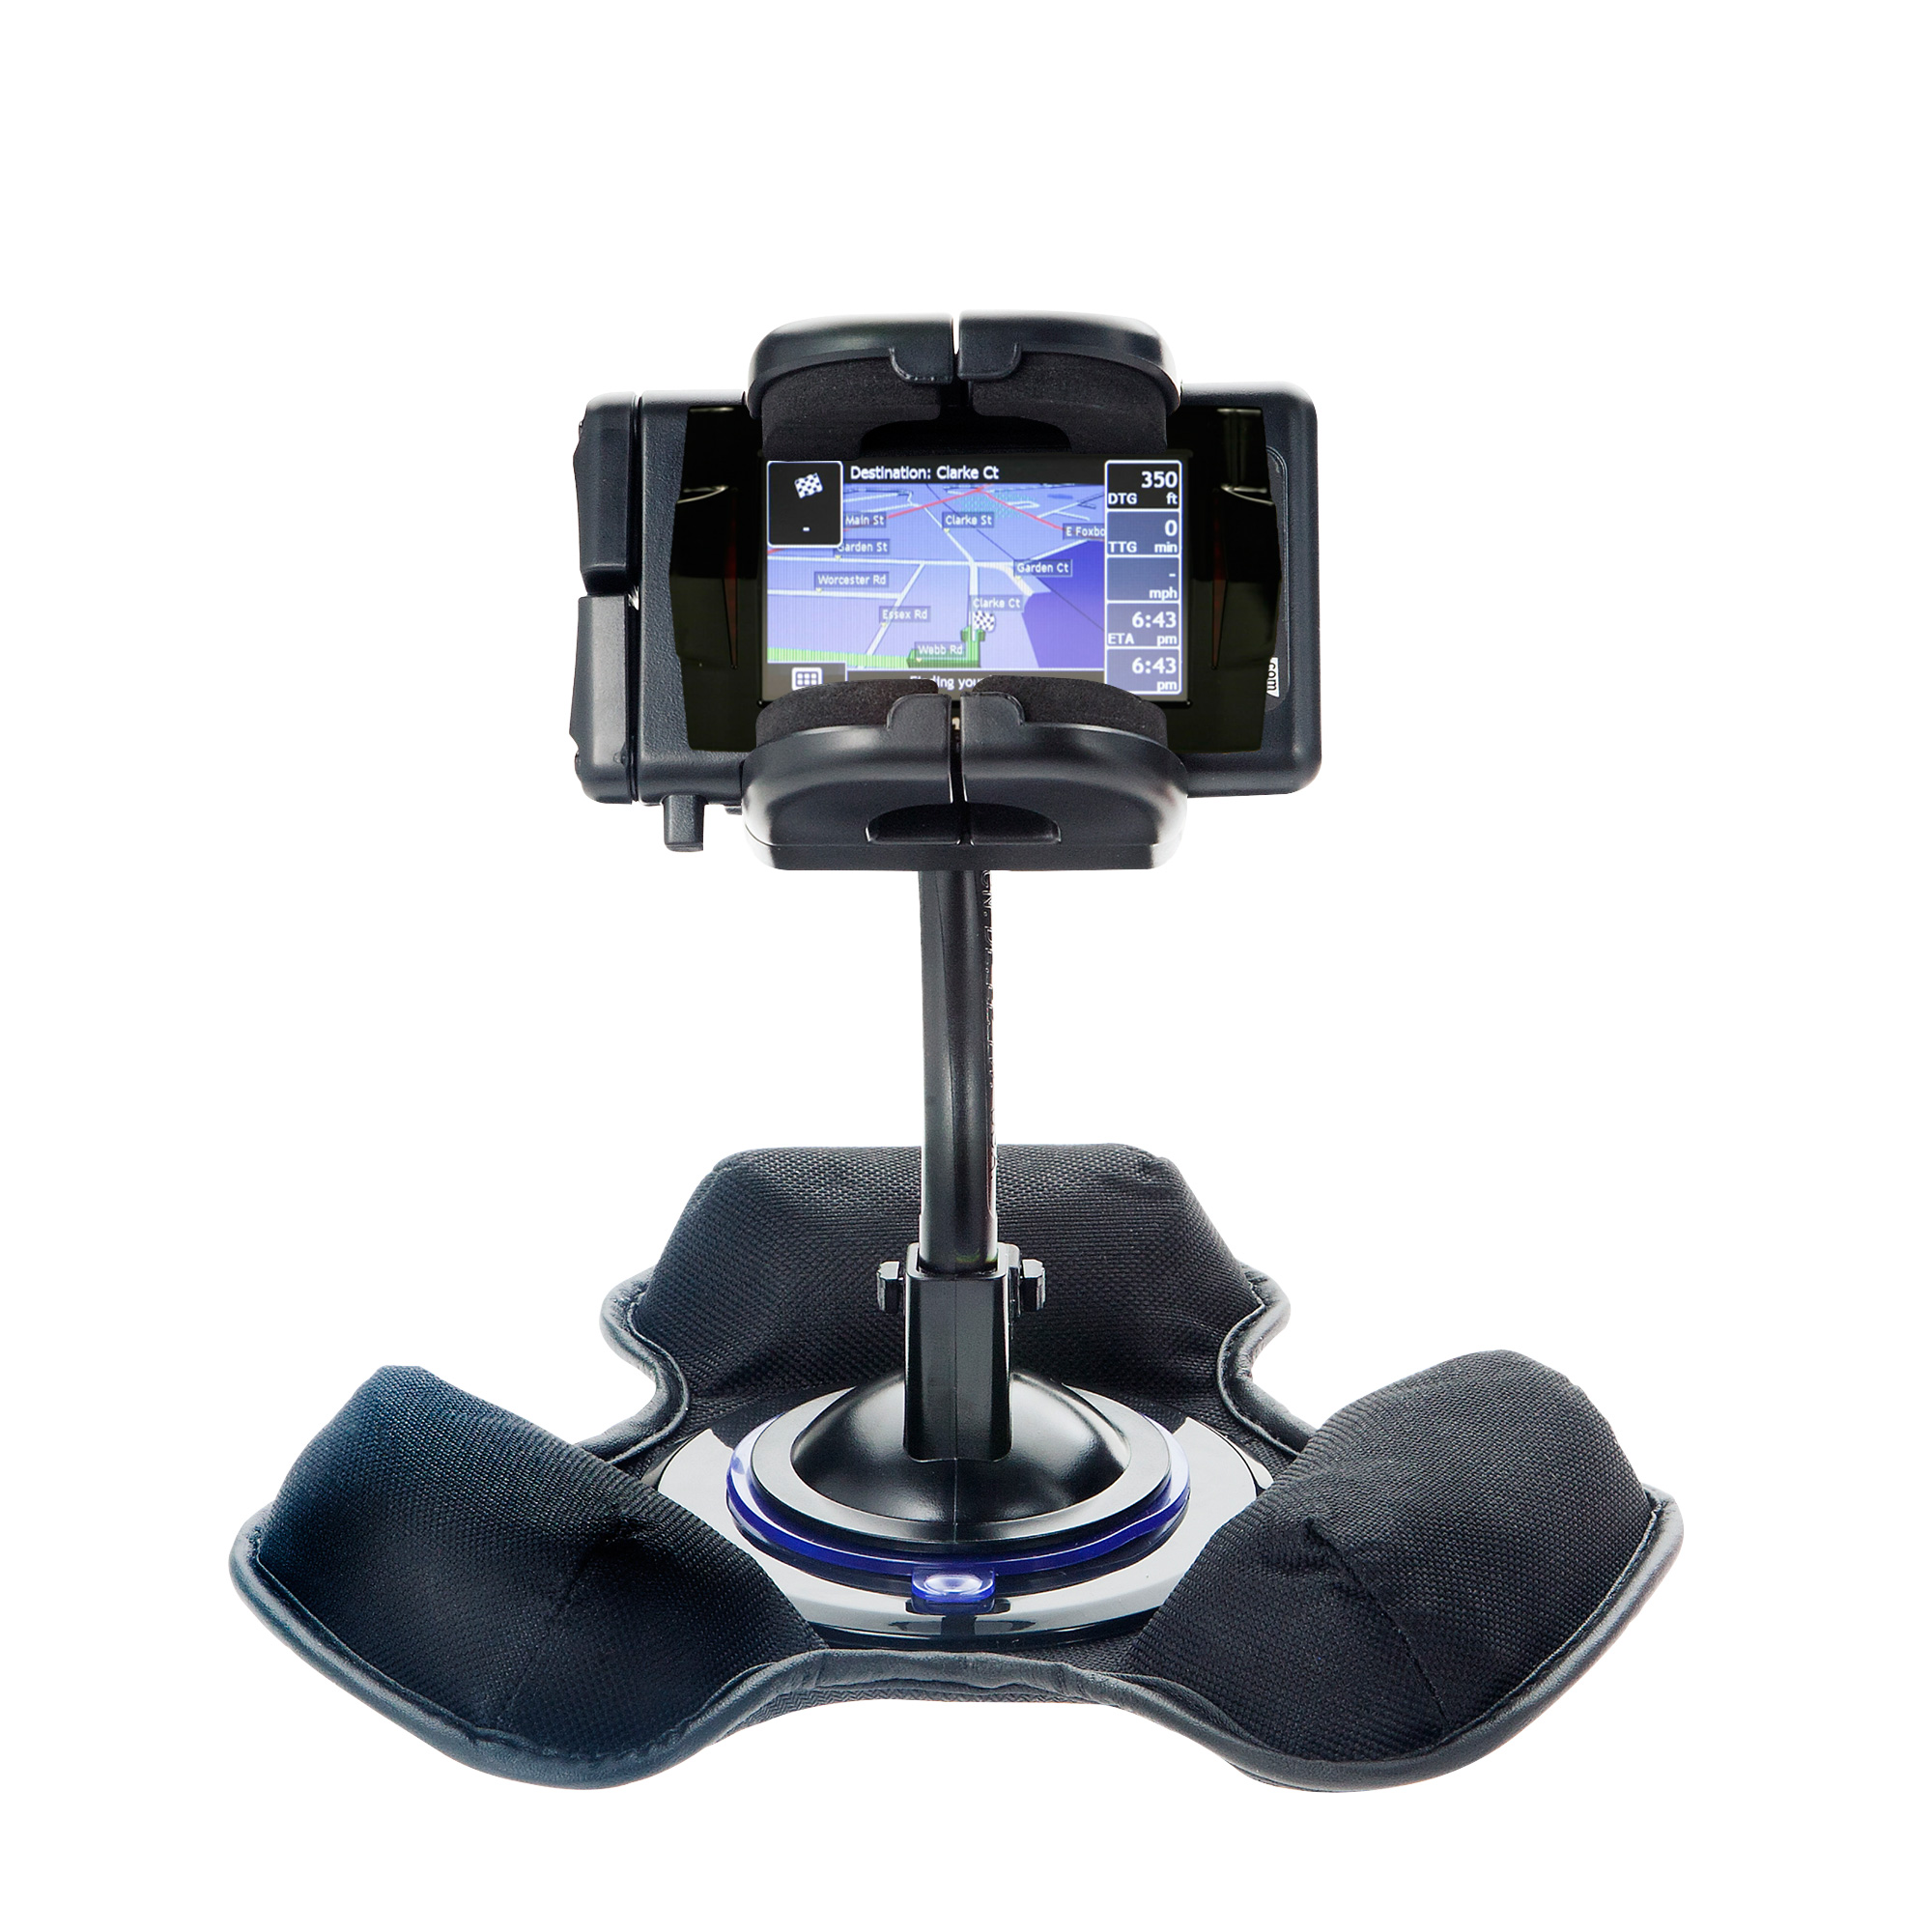 Car / Truck Vehicle Holder Mounting System for Mio Knight Rider Includes Unique Flexible Windshield Suction and Universal Dashboard Mount Options